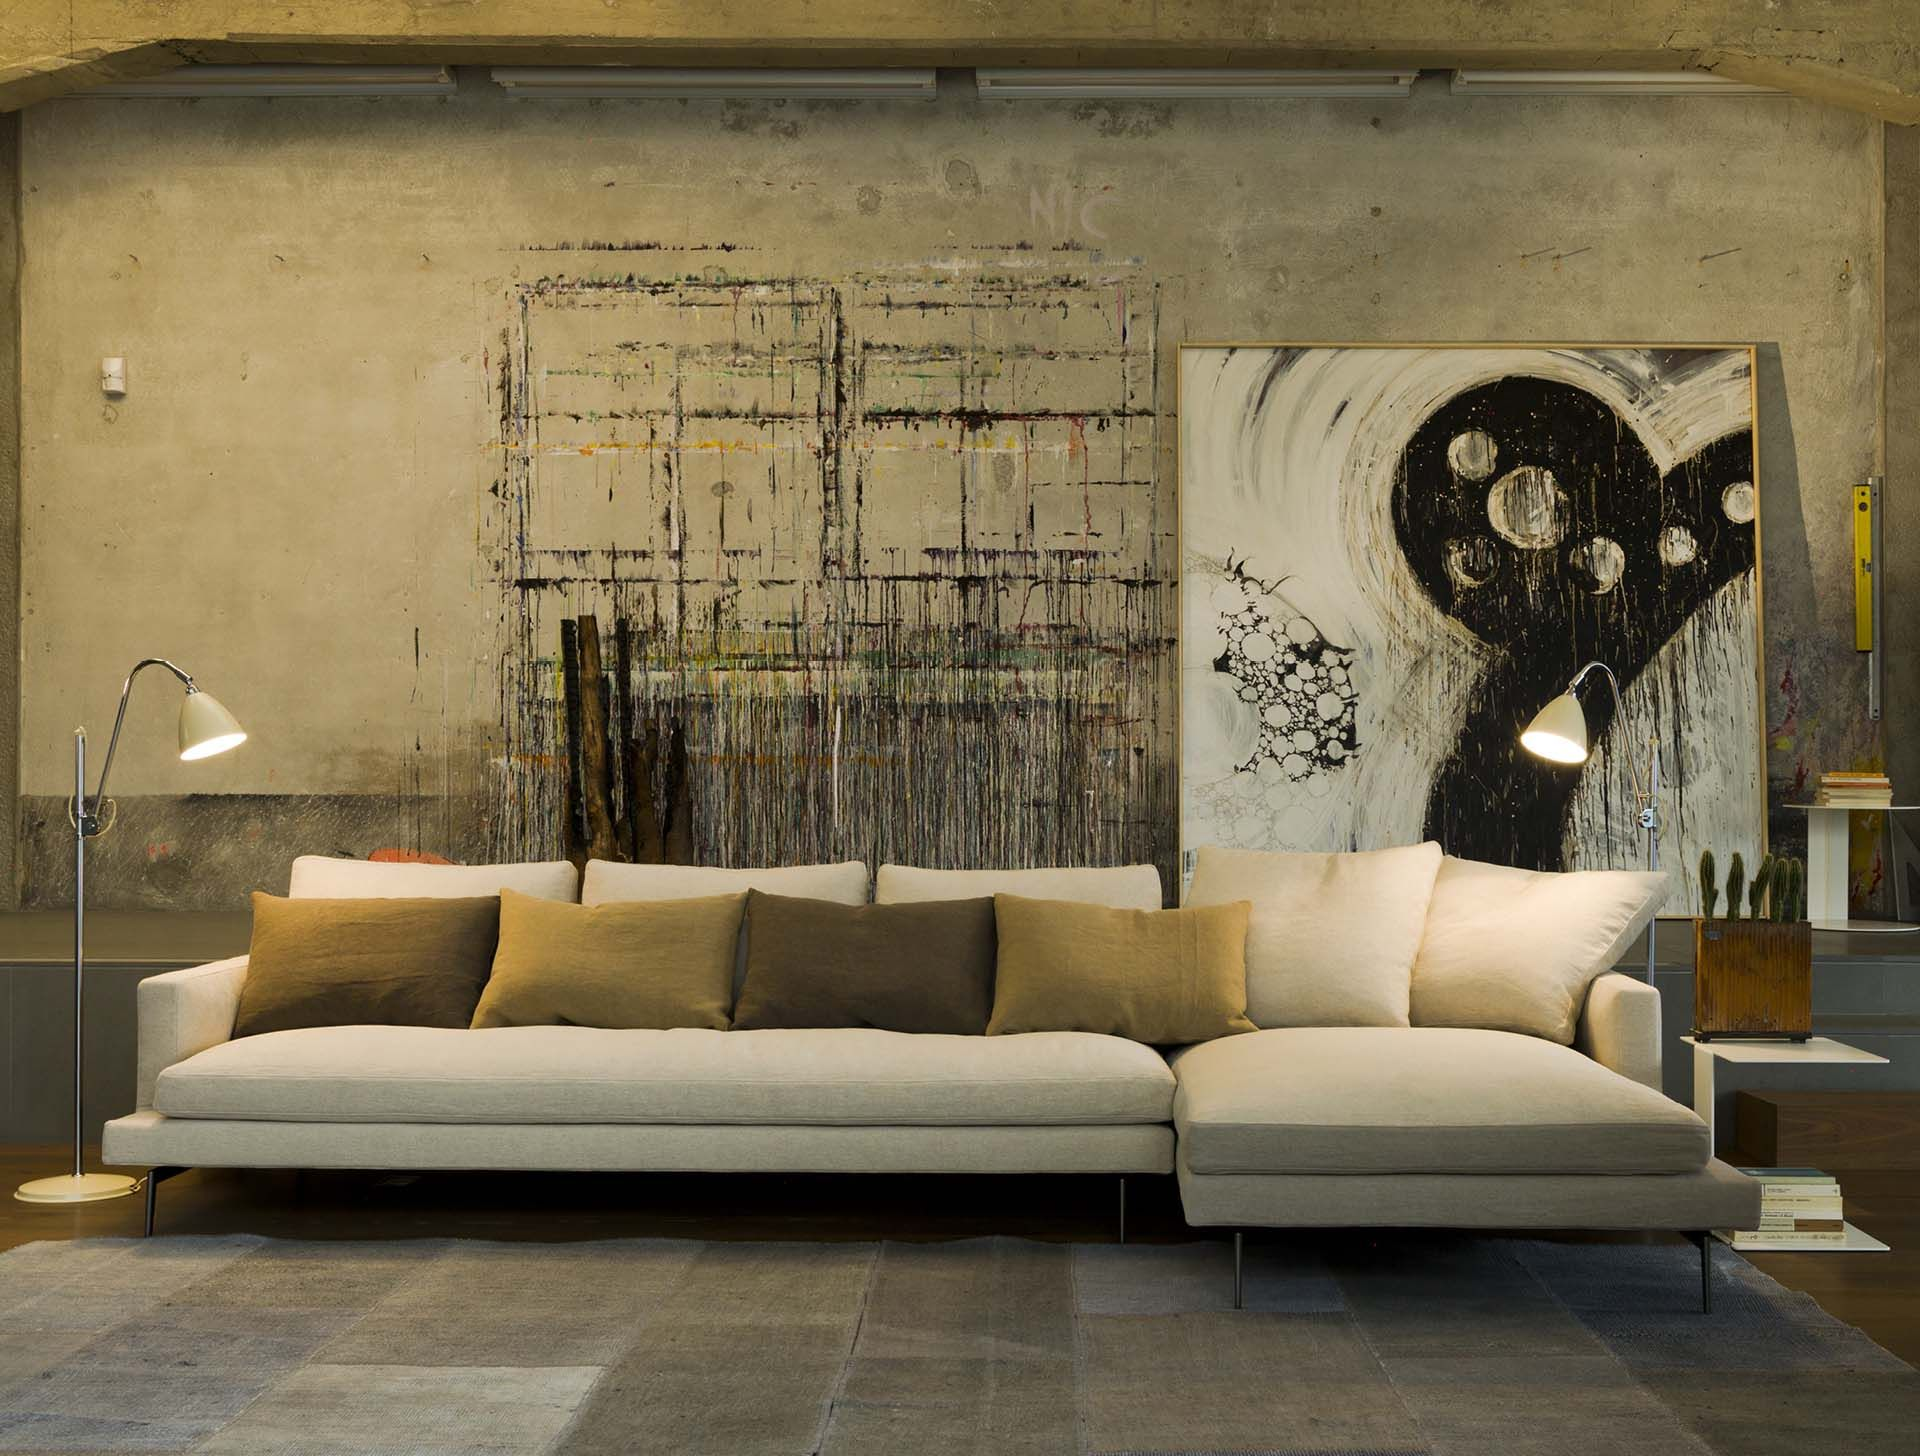 Verzelloni Sessel Larsen Verzelloni Sofa With Elegance That Refers To American